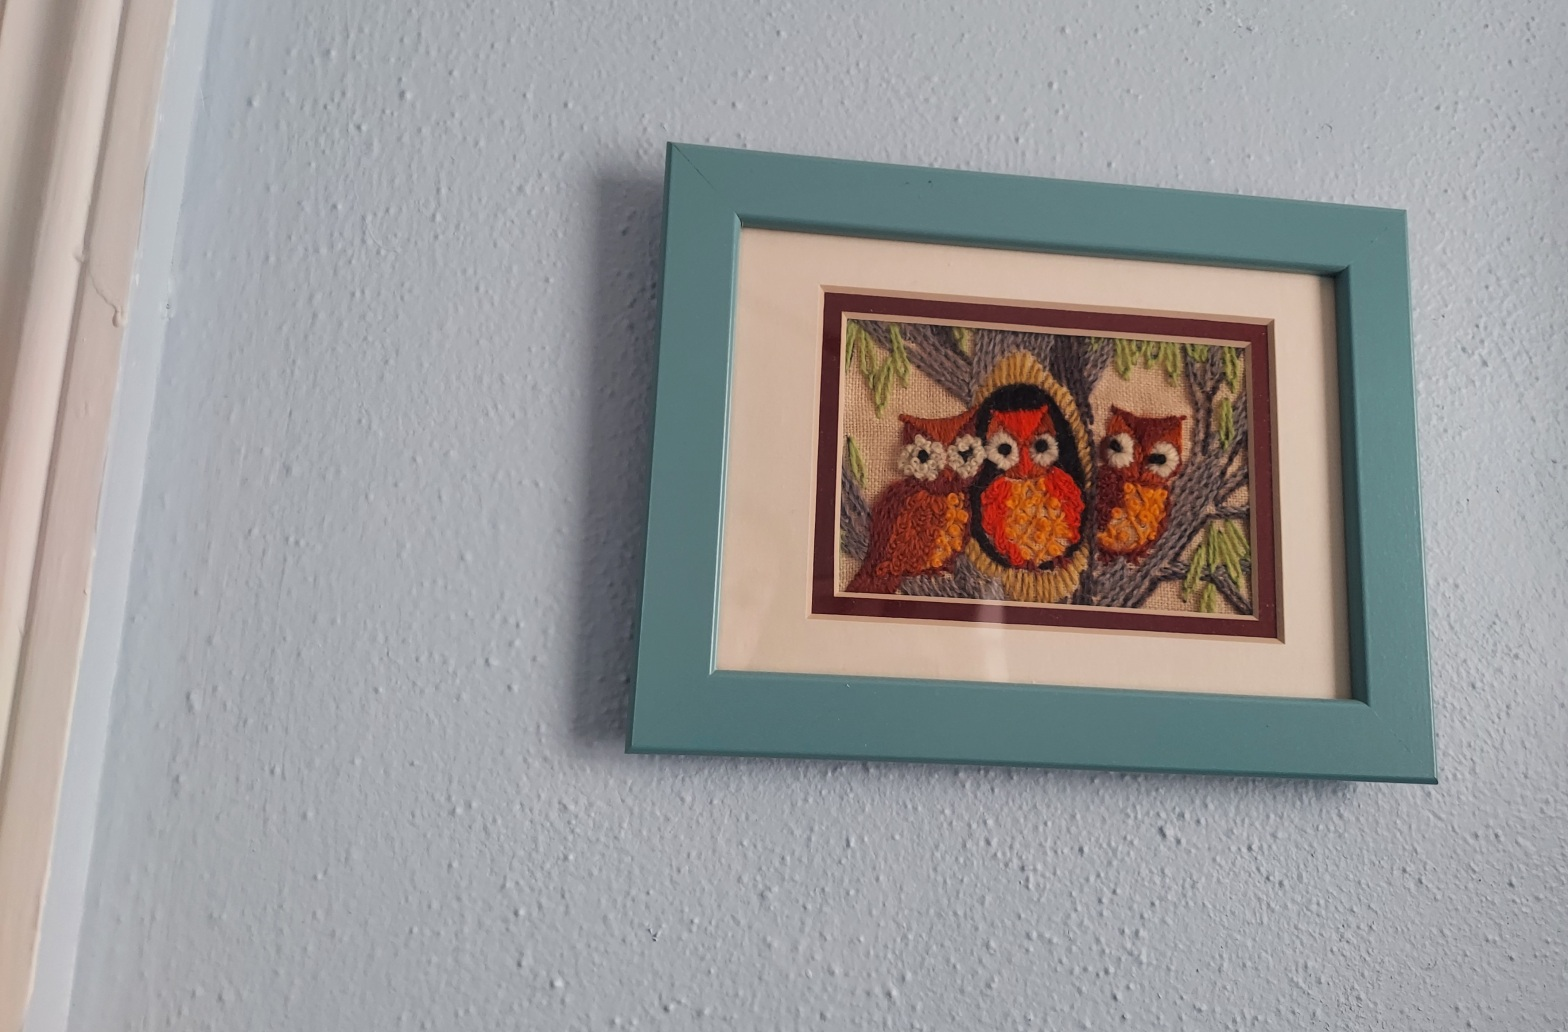 framed embroidery of 3 owls